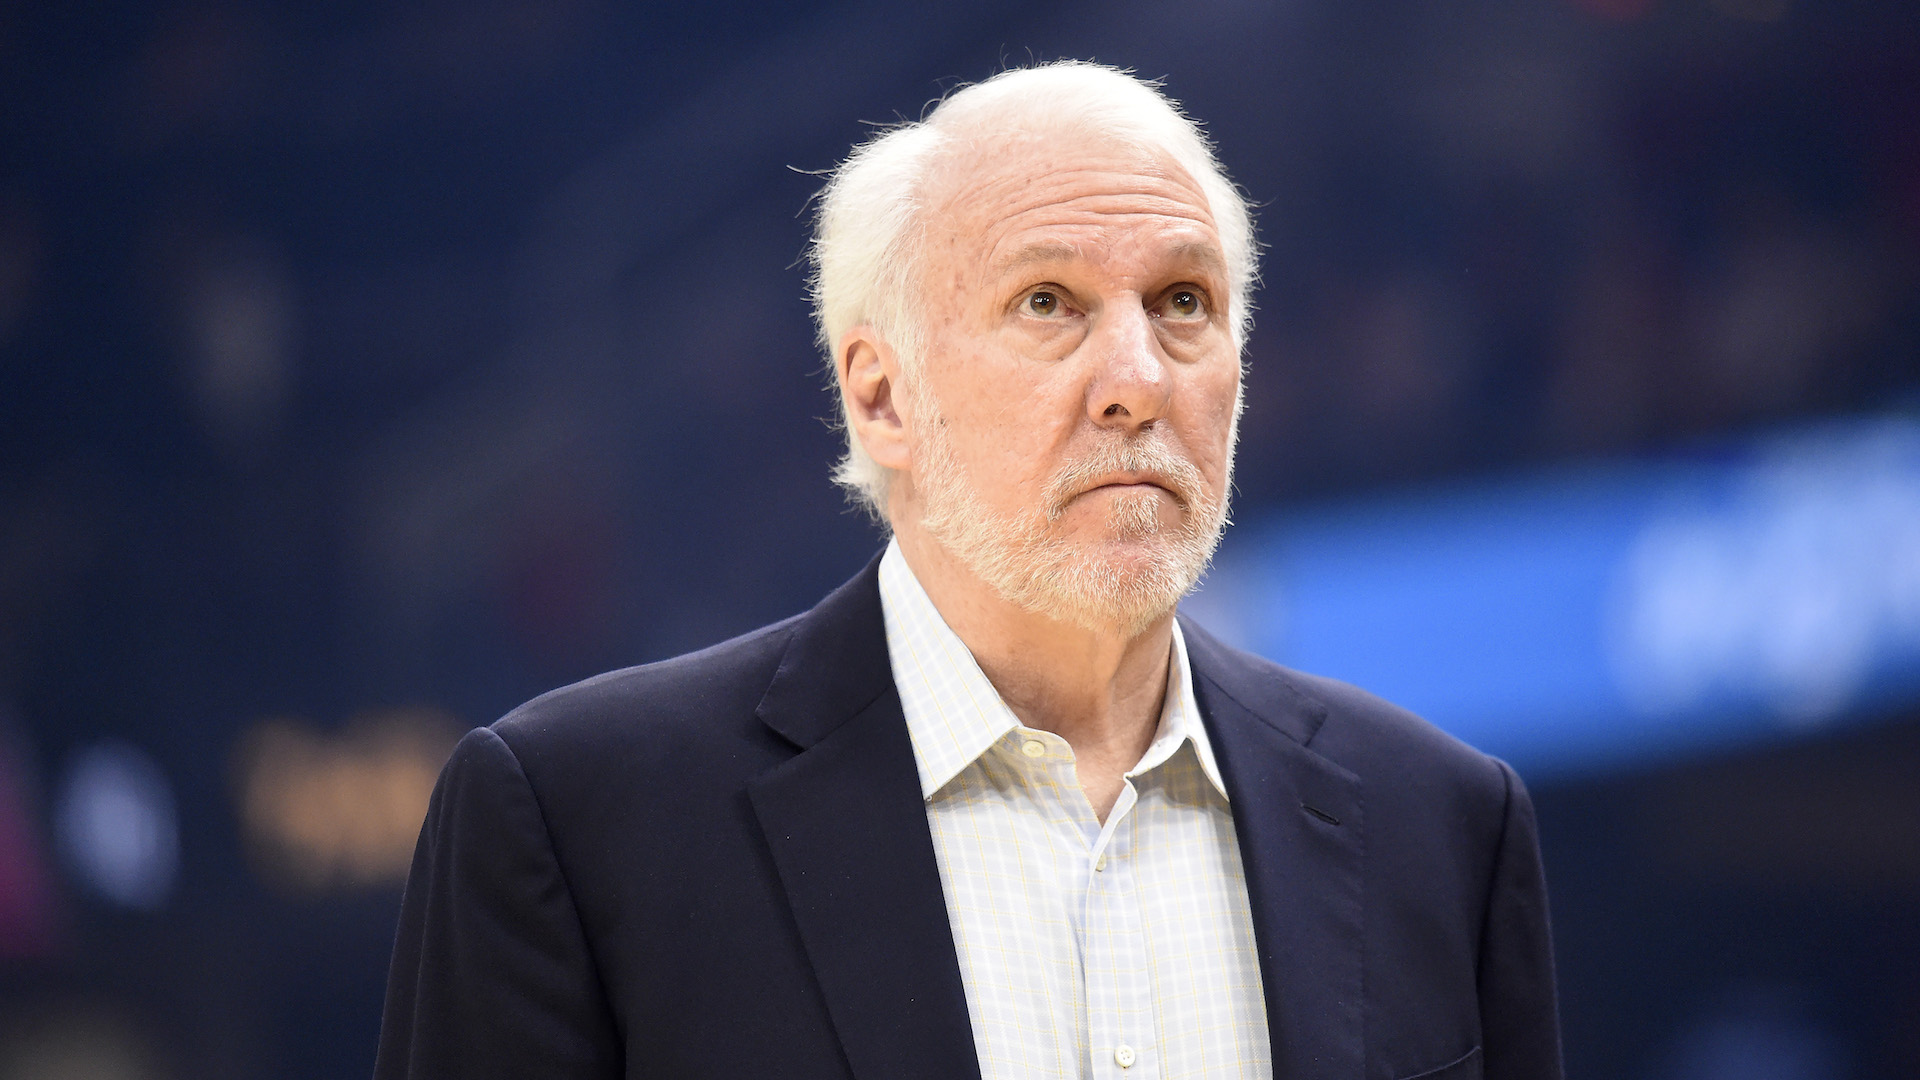 Gregg Popovich Calls Out Roger Goodell for Being 'Intimidated' by Trump Over Anthem Protests